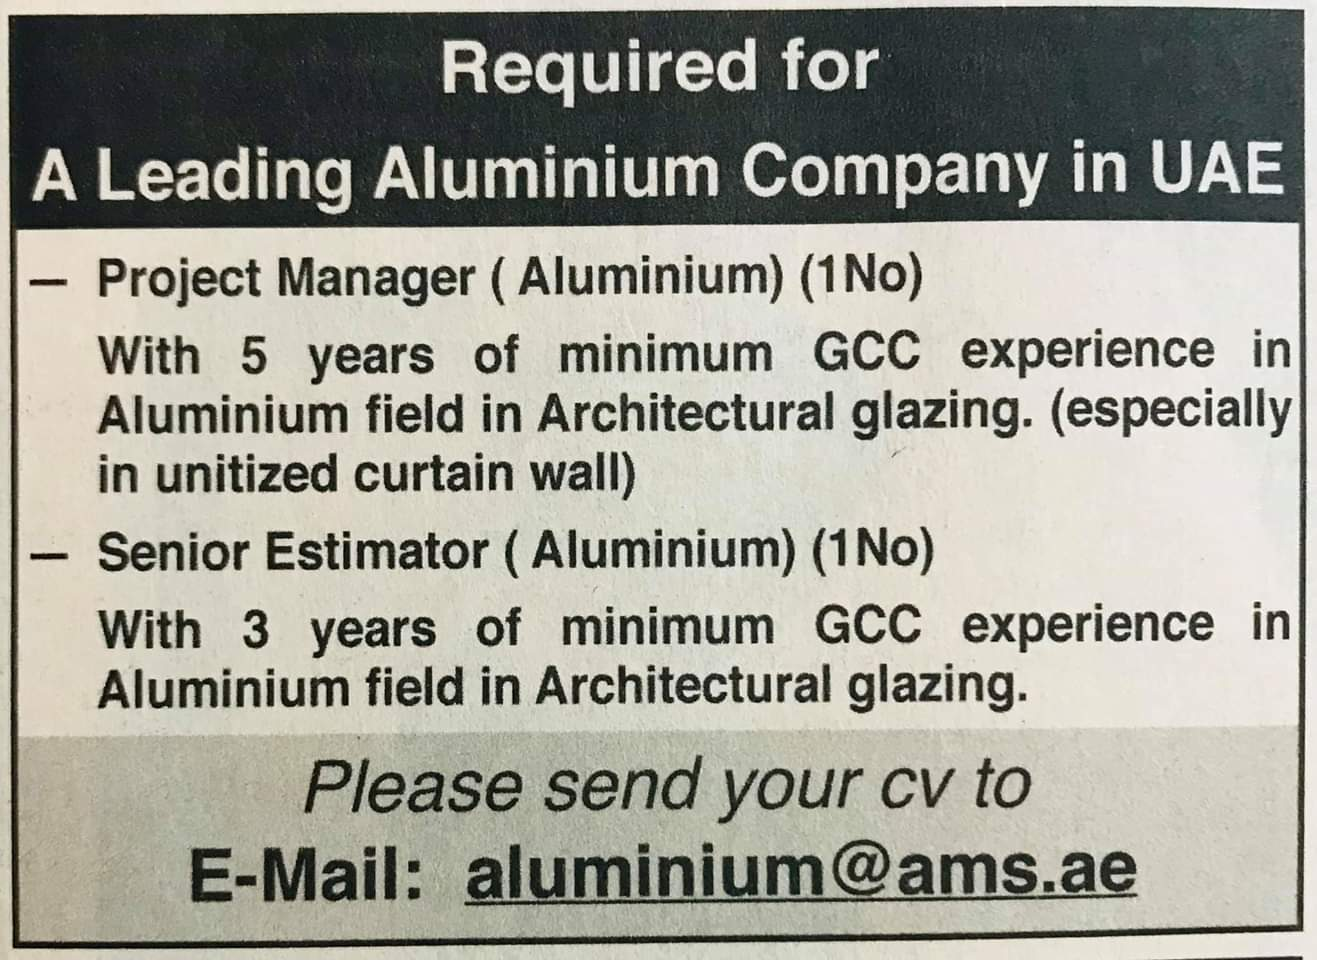 Required for A Leading Aluminum Company in UAE Local Hiring Jobs